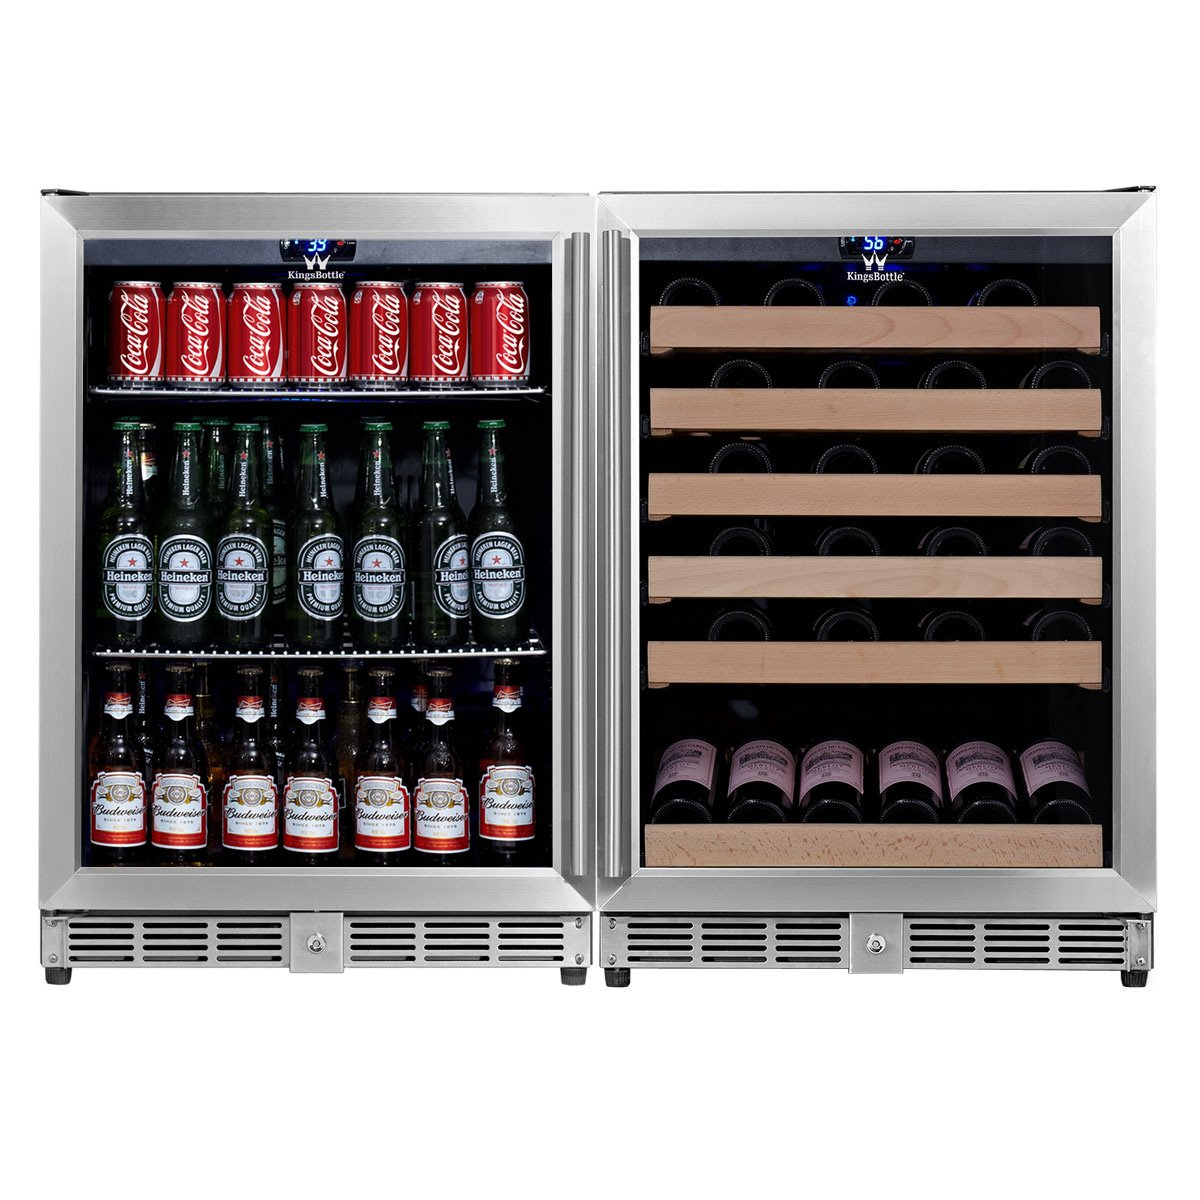 KingsBottle 2-Zone Wine and Beverage Combo Refrigerator, Holds 160 Cans and 46 Bottles, Stainless Steel with Glass Door